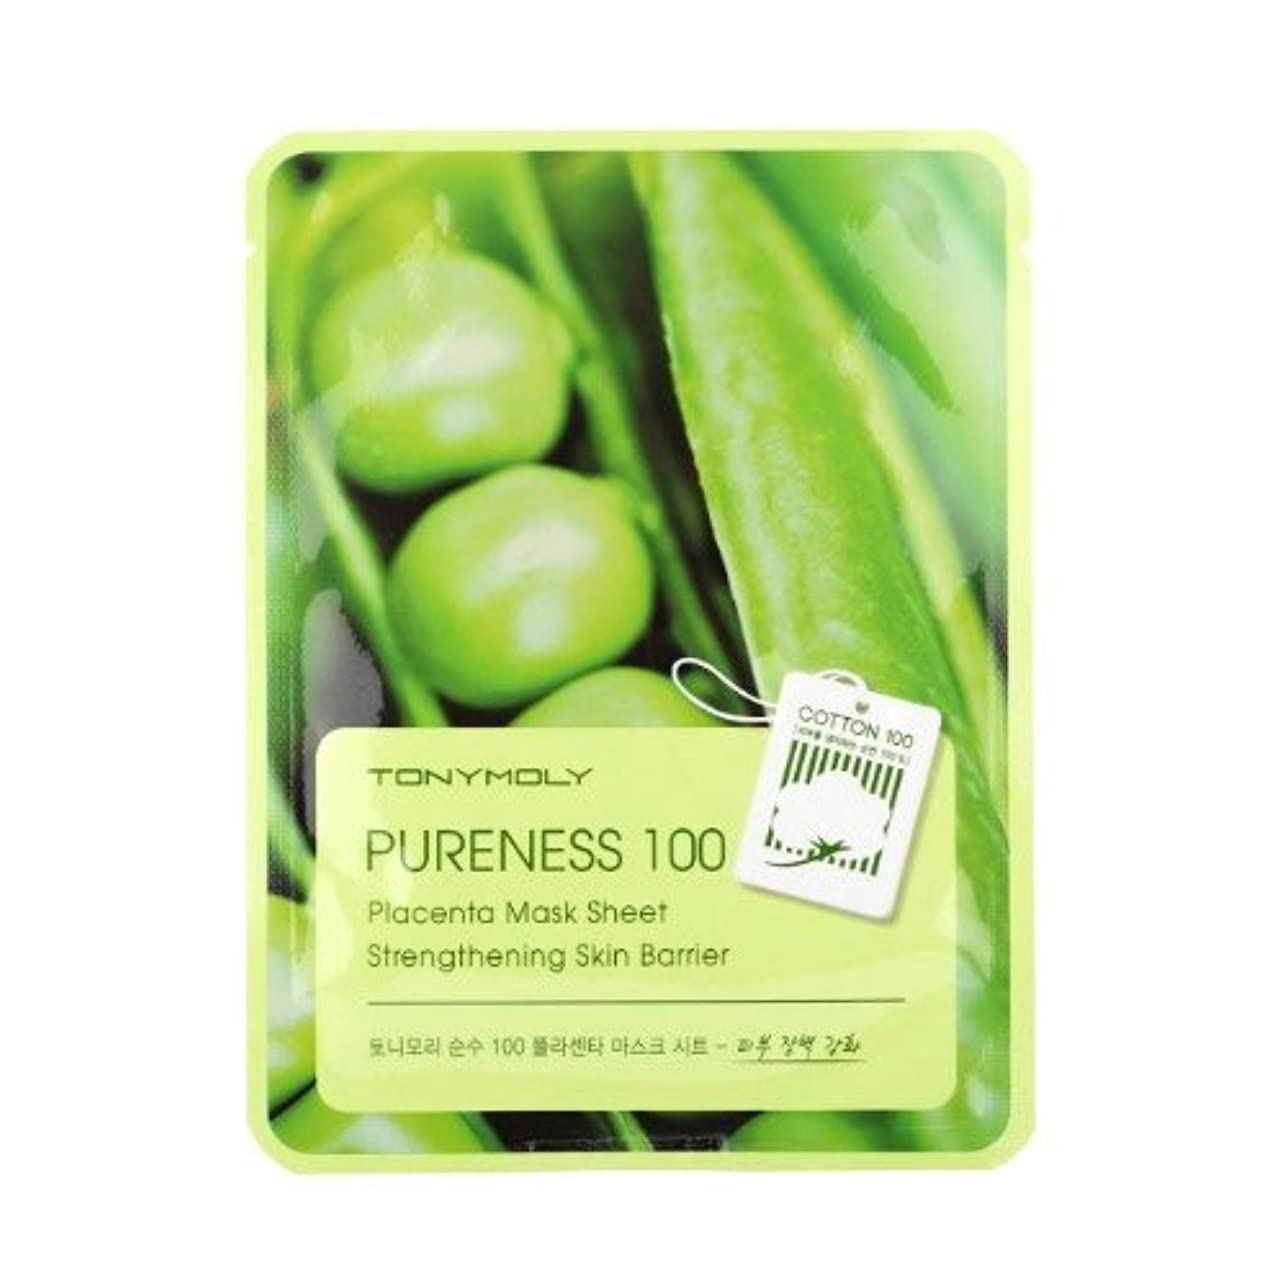 薬理学宇宙のバウンス(3 Pack) TONYMOLY Pureness 100 Placenta Mask Sheet Strengthening Skin Barrier (並行輸入品)